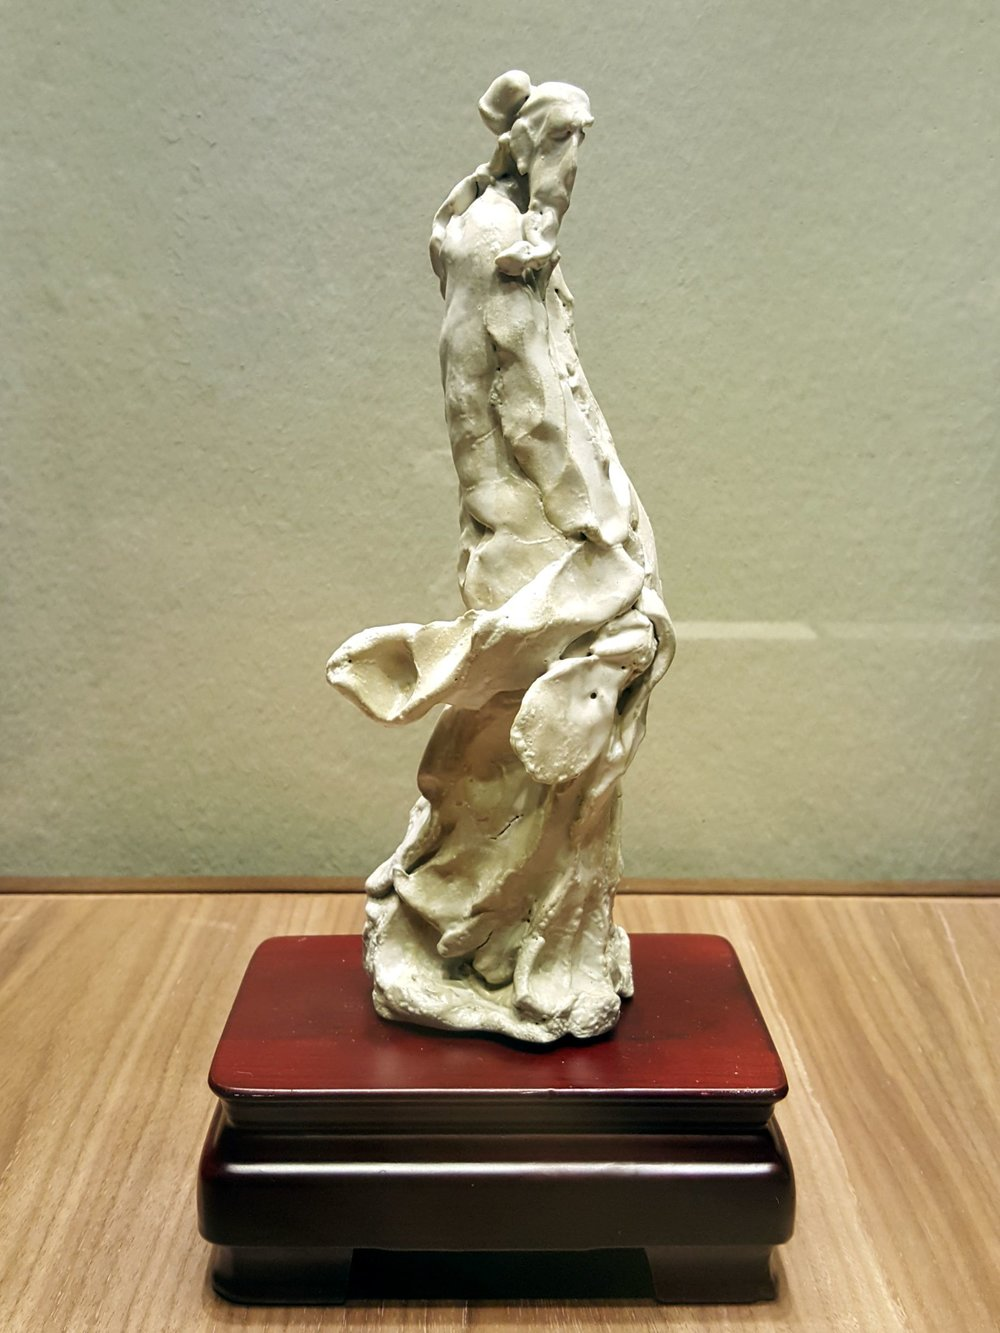 Semi-abstract Male Figures (Shiwan Pottery) by Pan Bolin    National Art Museum, Beijing